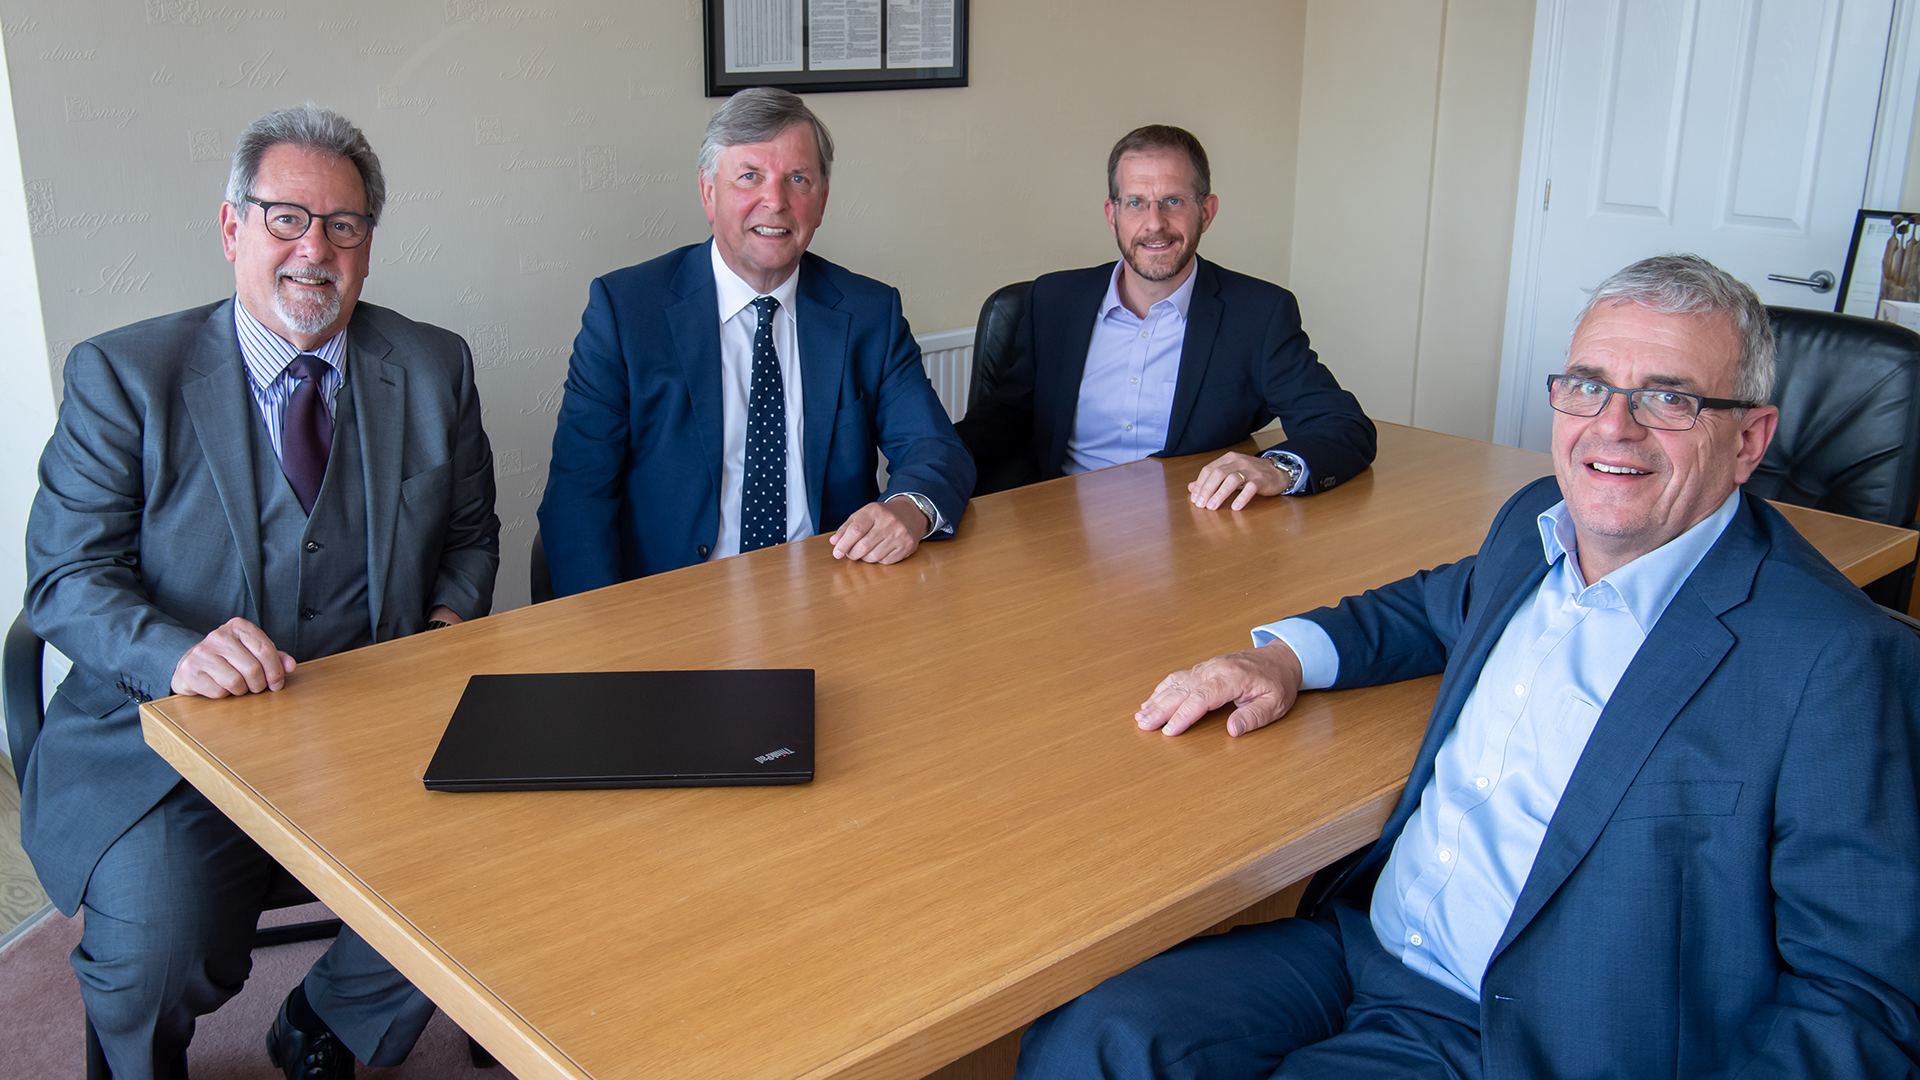 Champion strengthens Preston practice with TLL merger